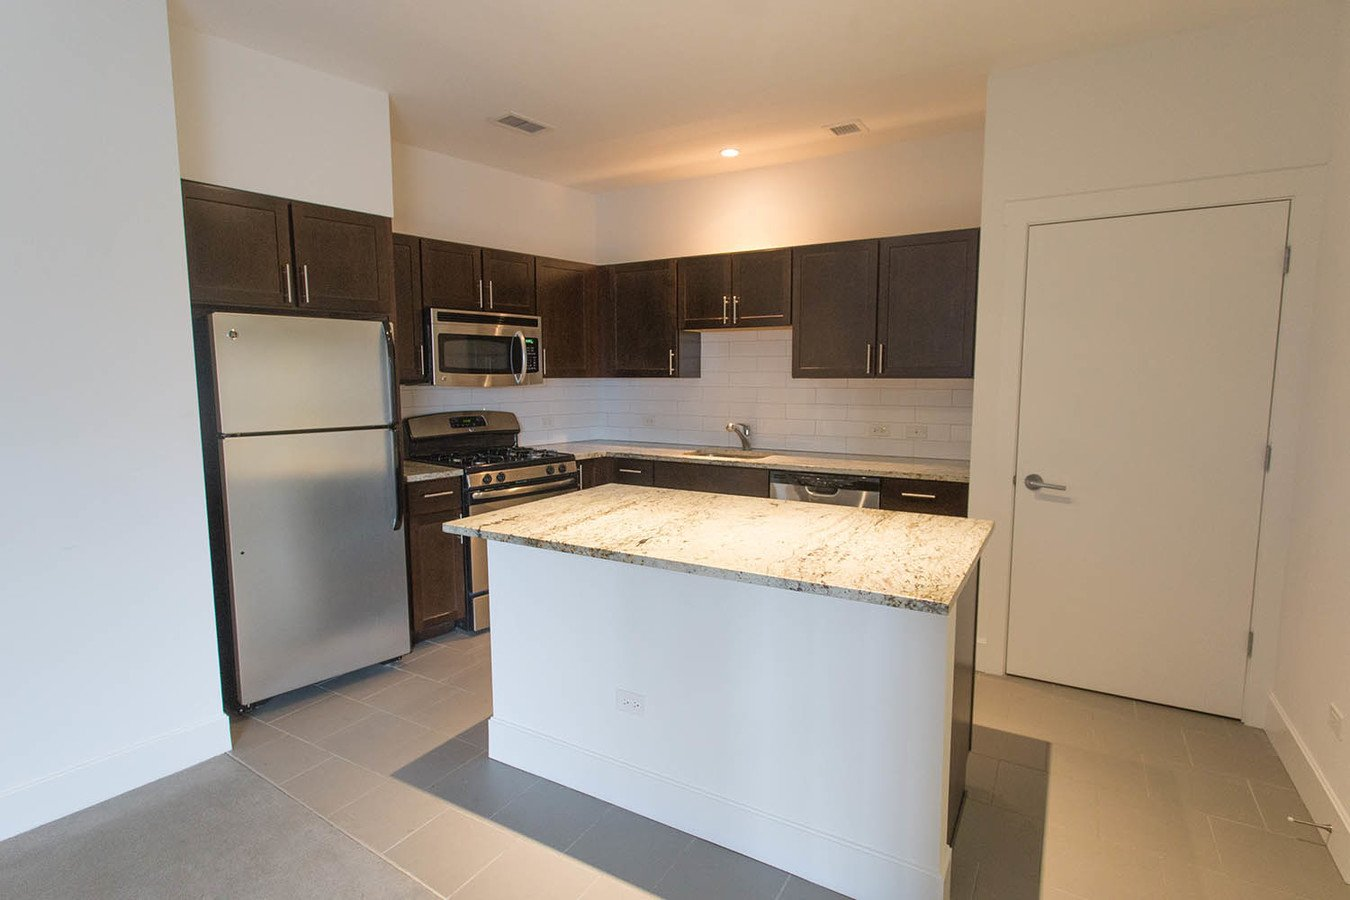 3 Bedrooms 3 Bathrooms Apartment for rent at Shoreland in Chicago, IL